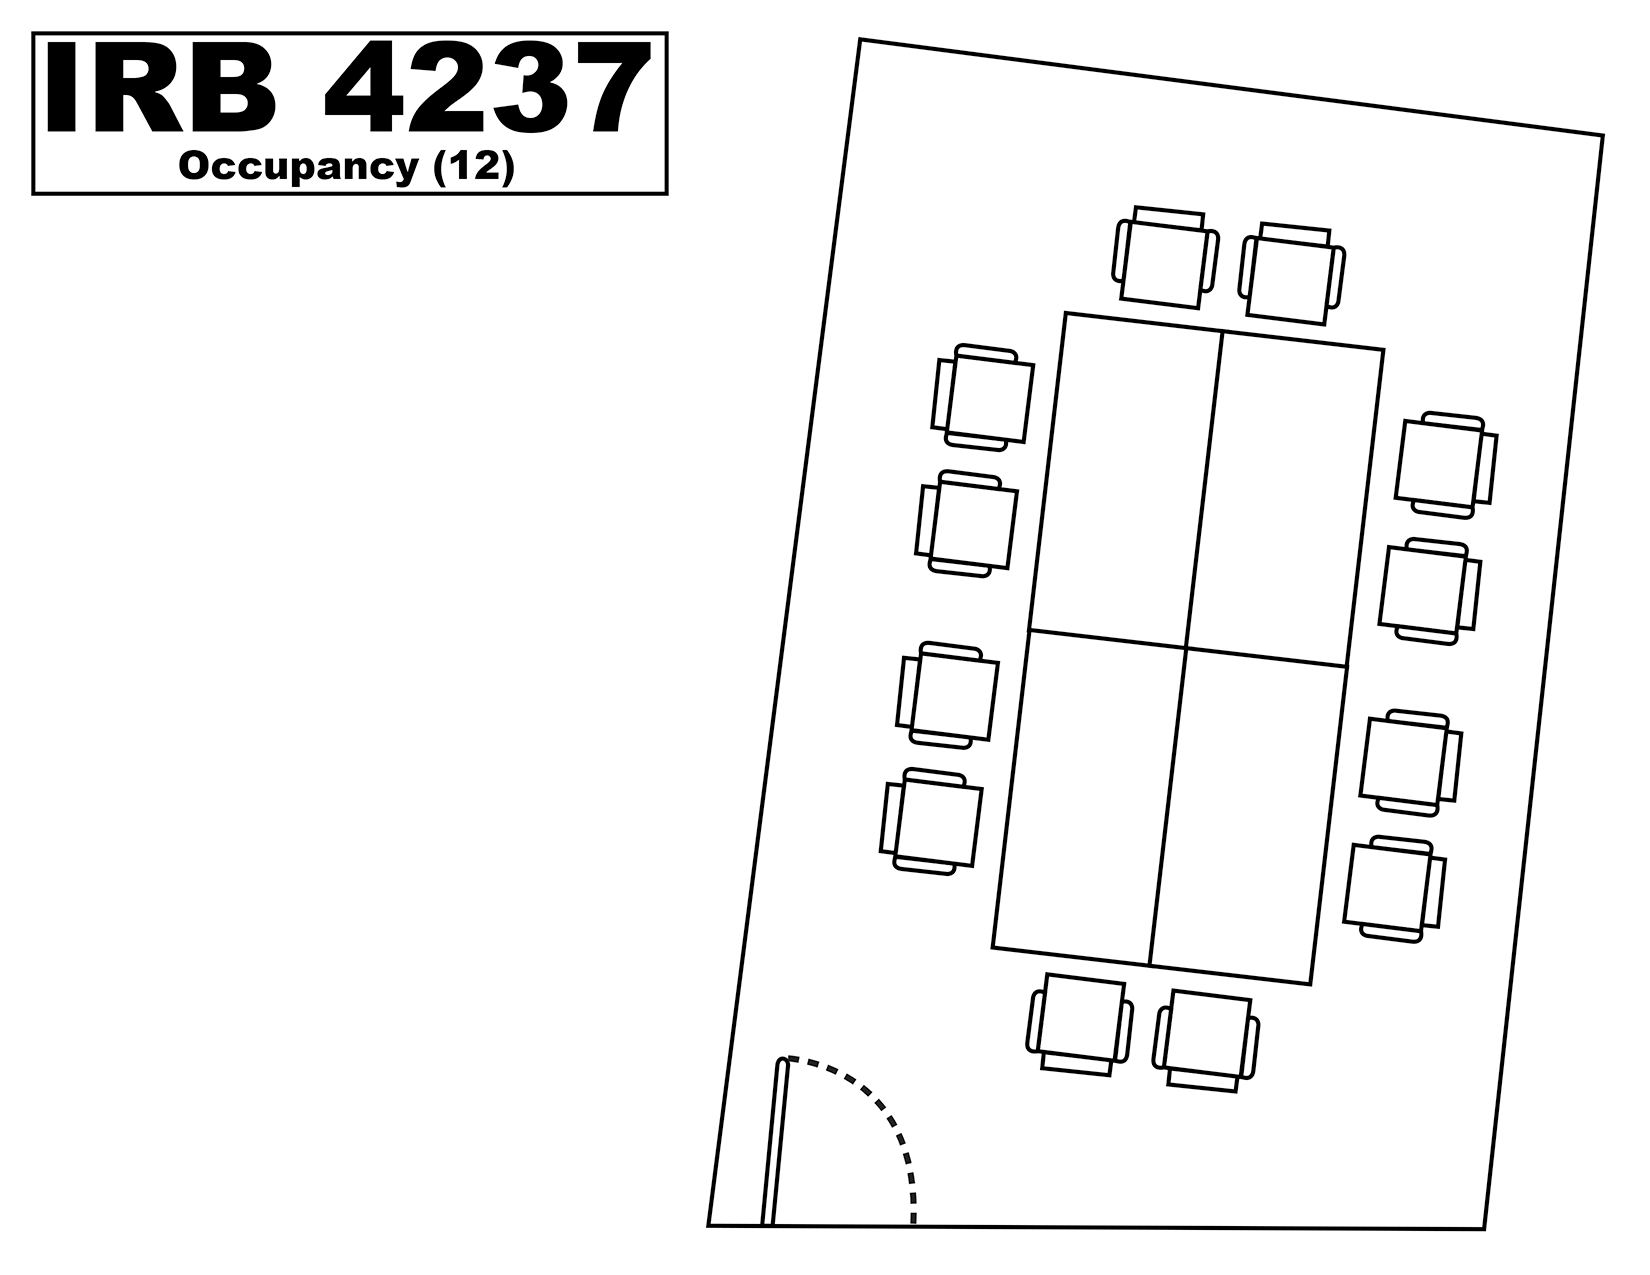 IRB4237 floorplan